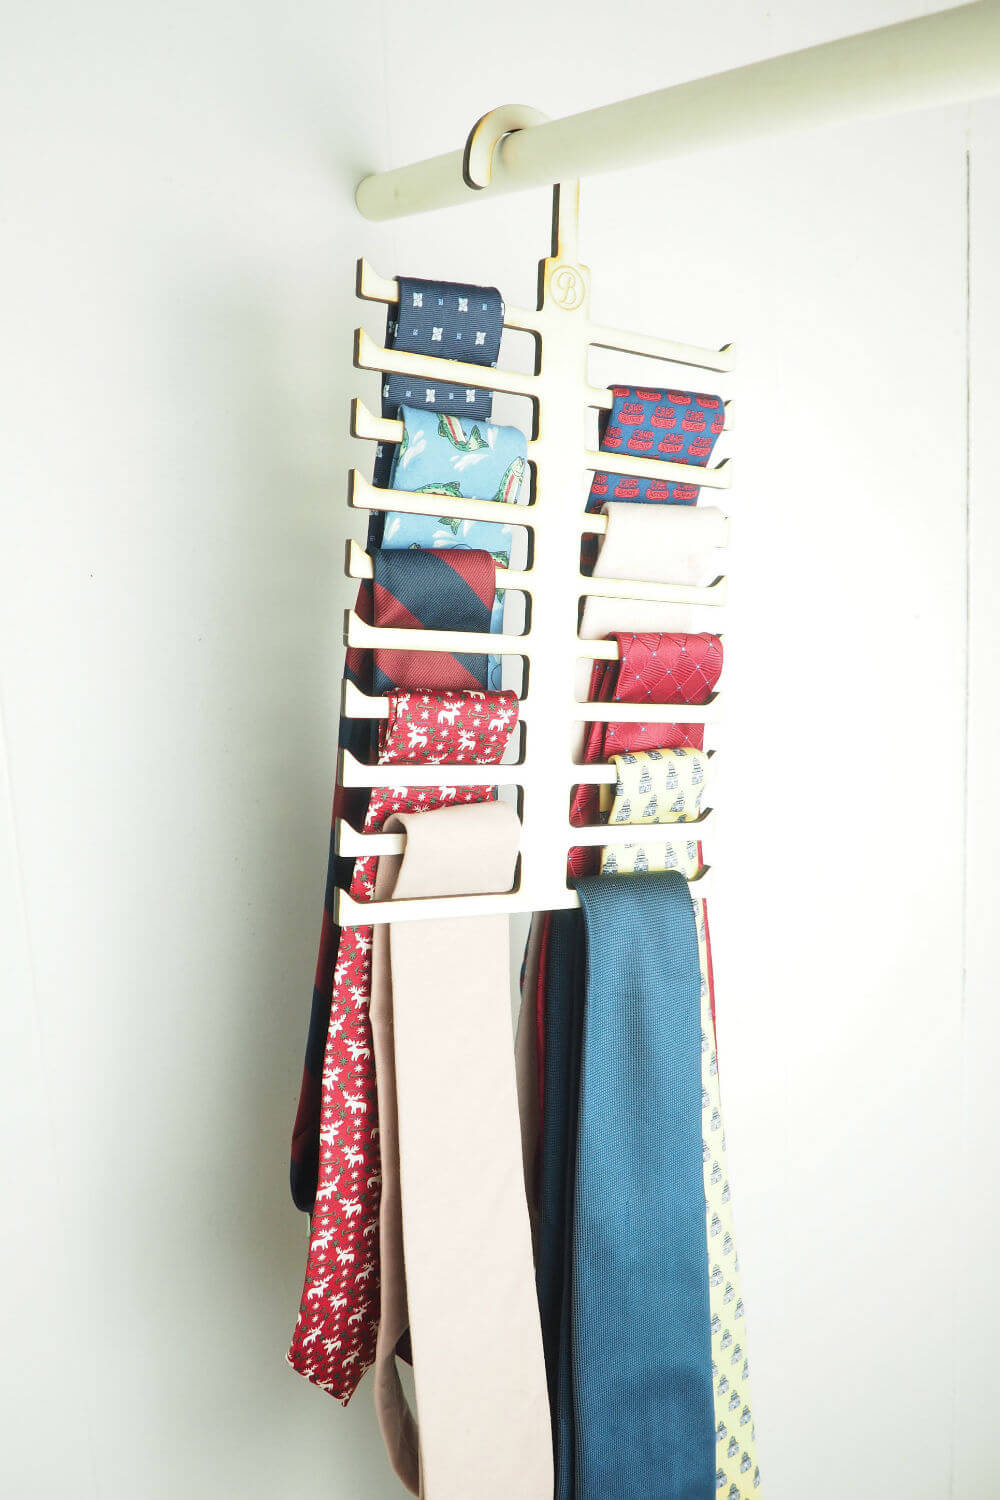 Unique Tie Hanger for Closet Organization